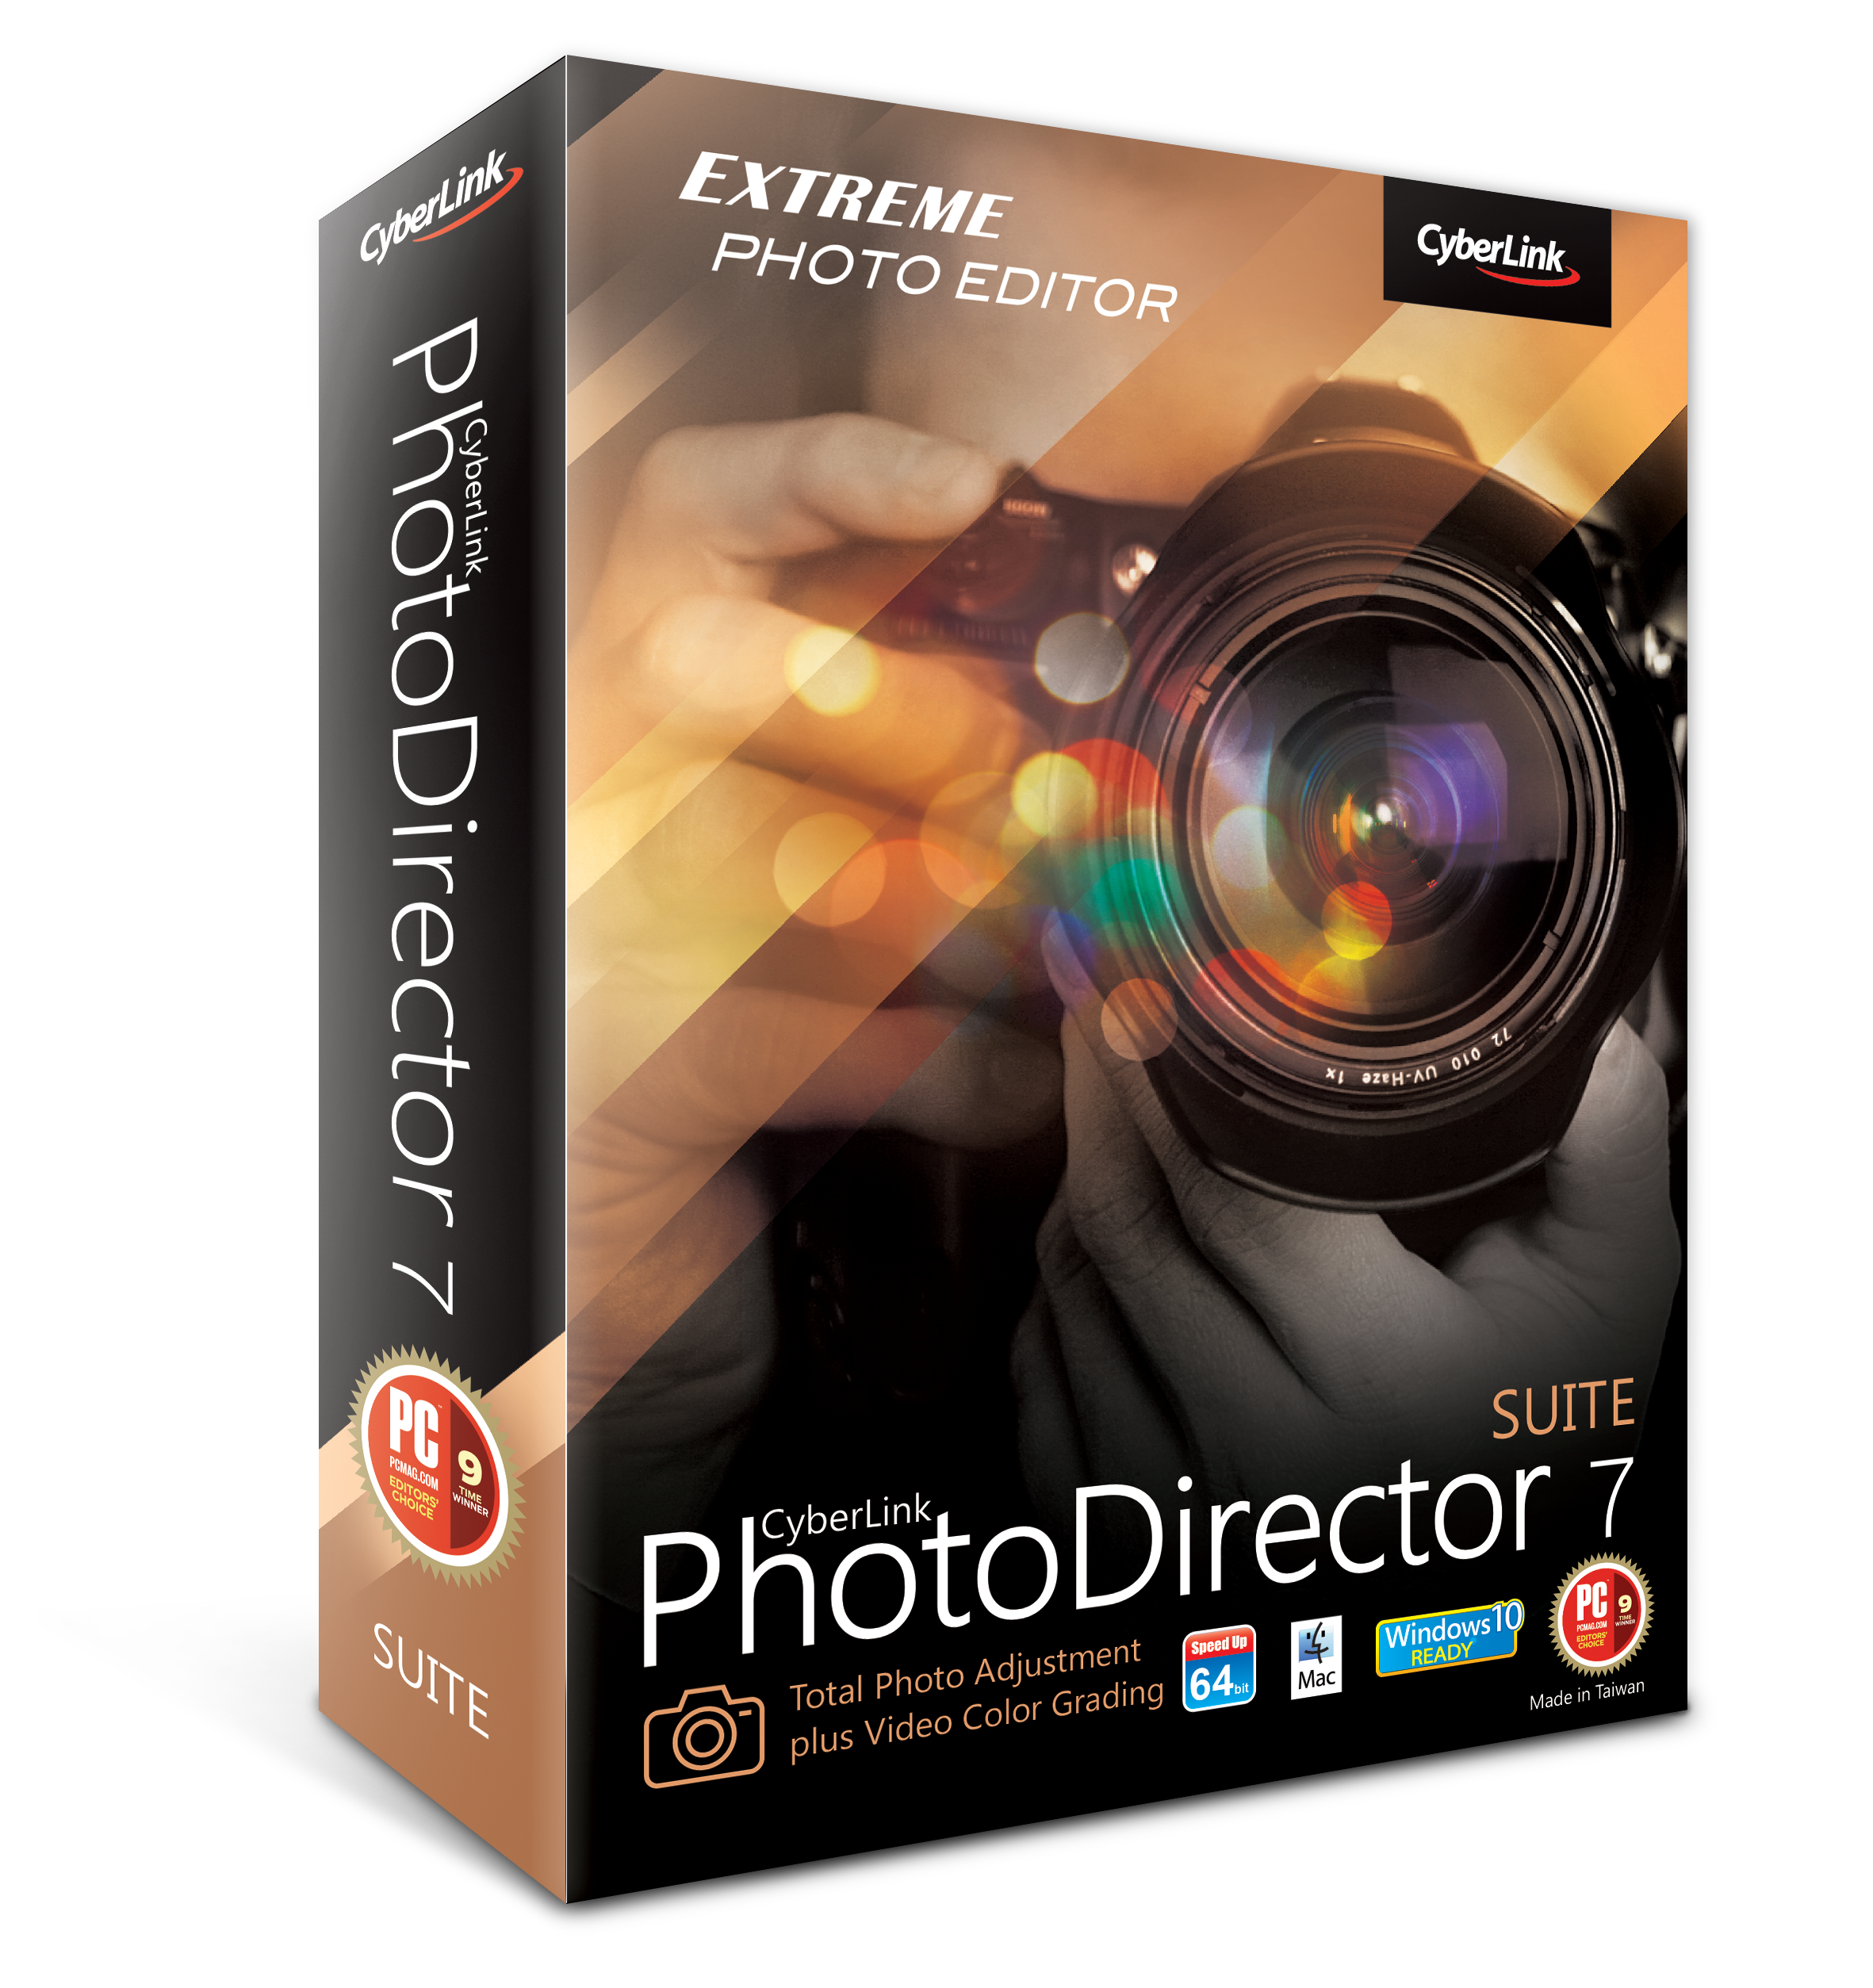 Upgrade to PhotoDirector 7 Suite PhotoDirector v.5/6